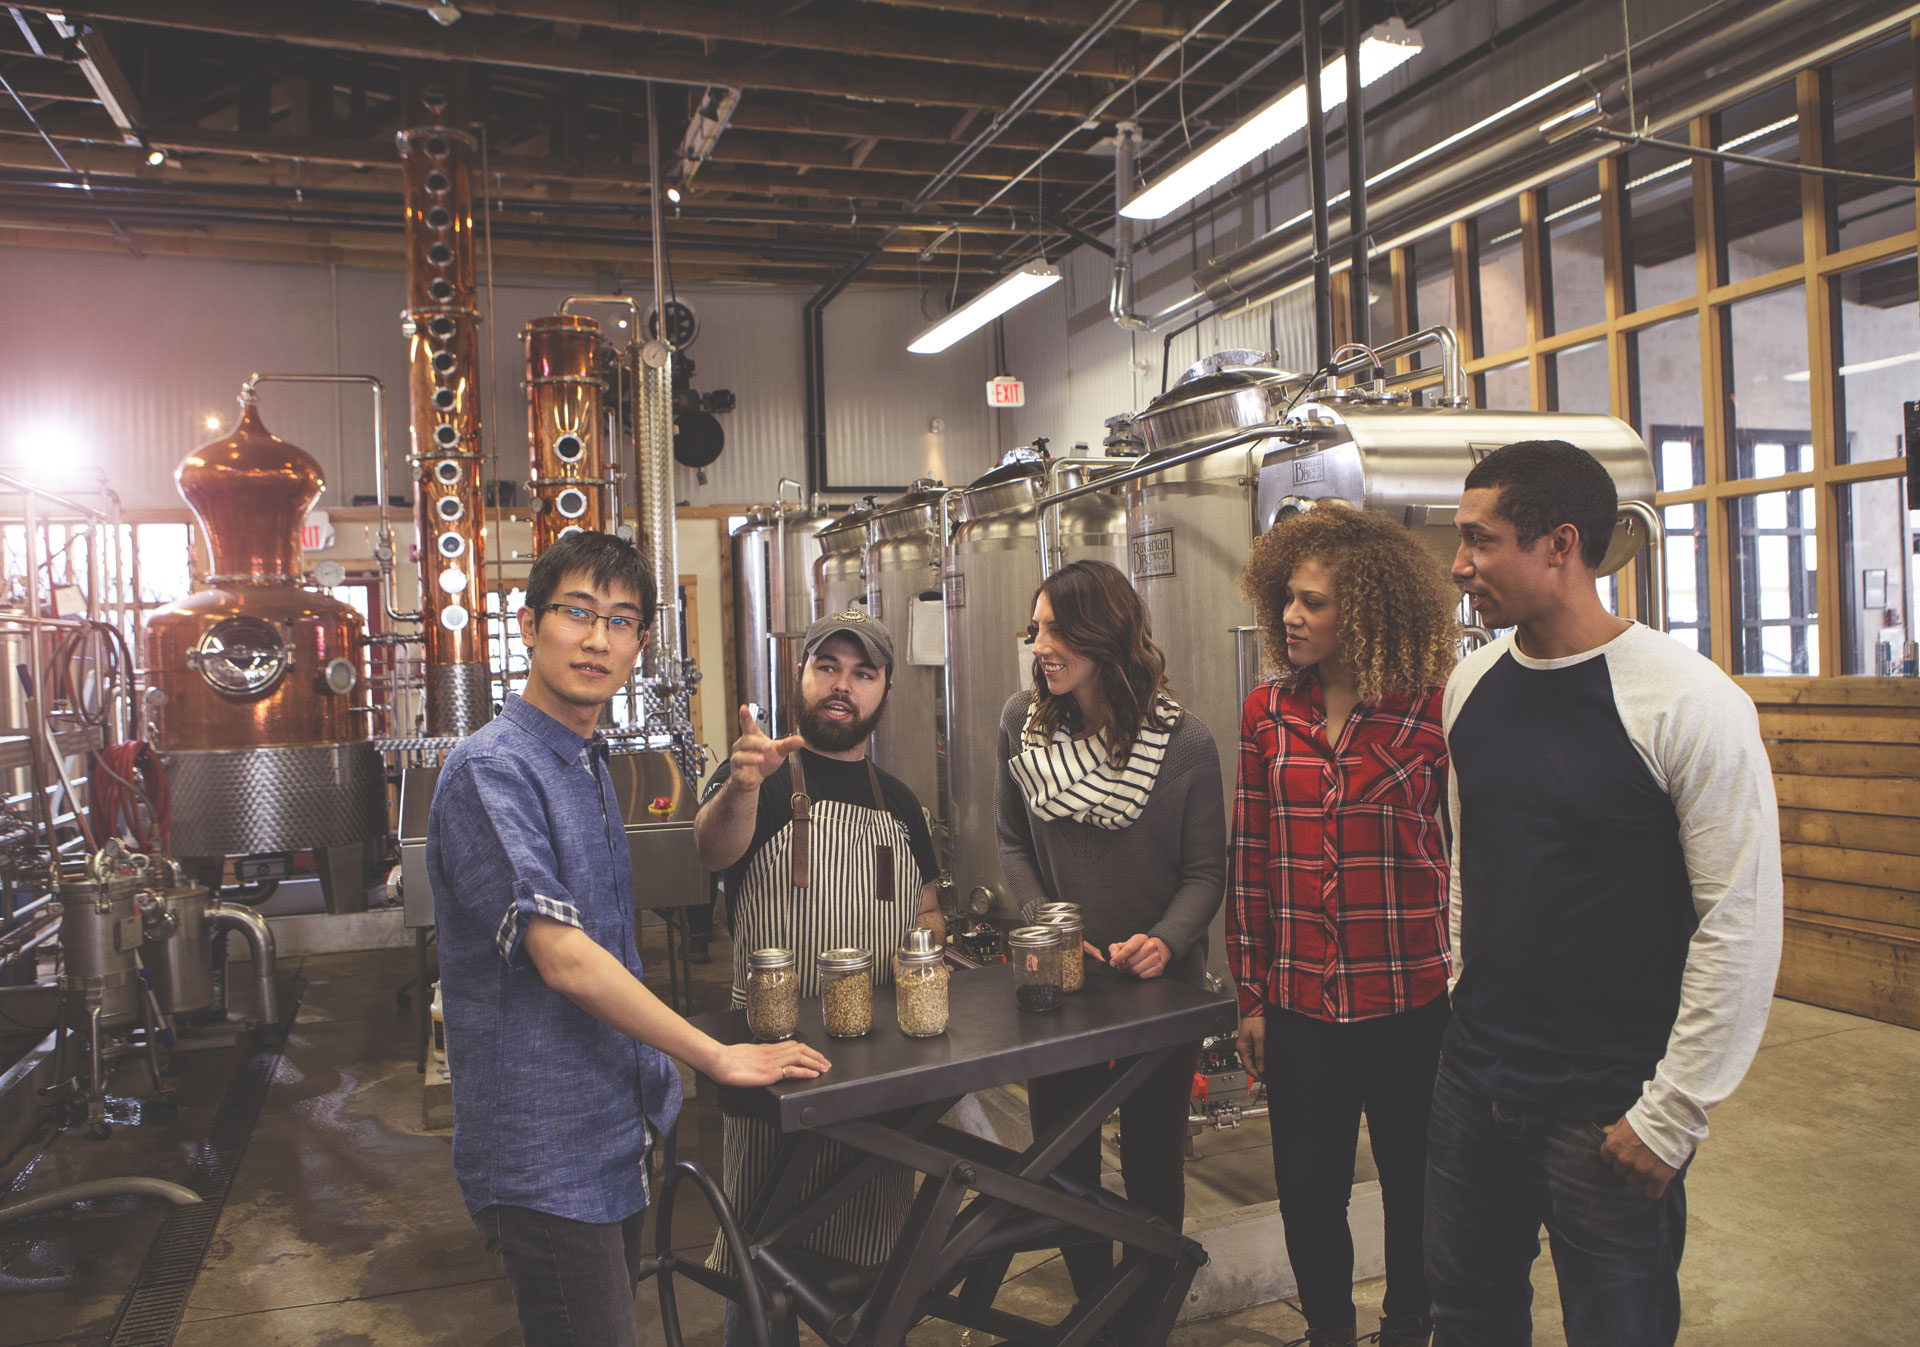 Take a tour at Eau Claire Distillery (Photo credit: Travel Alberta/Roth & Ramberg)